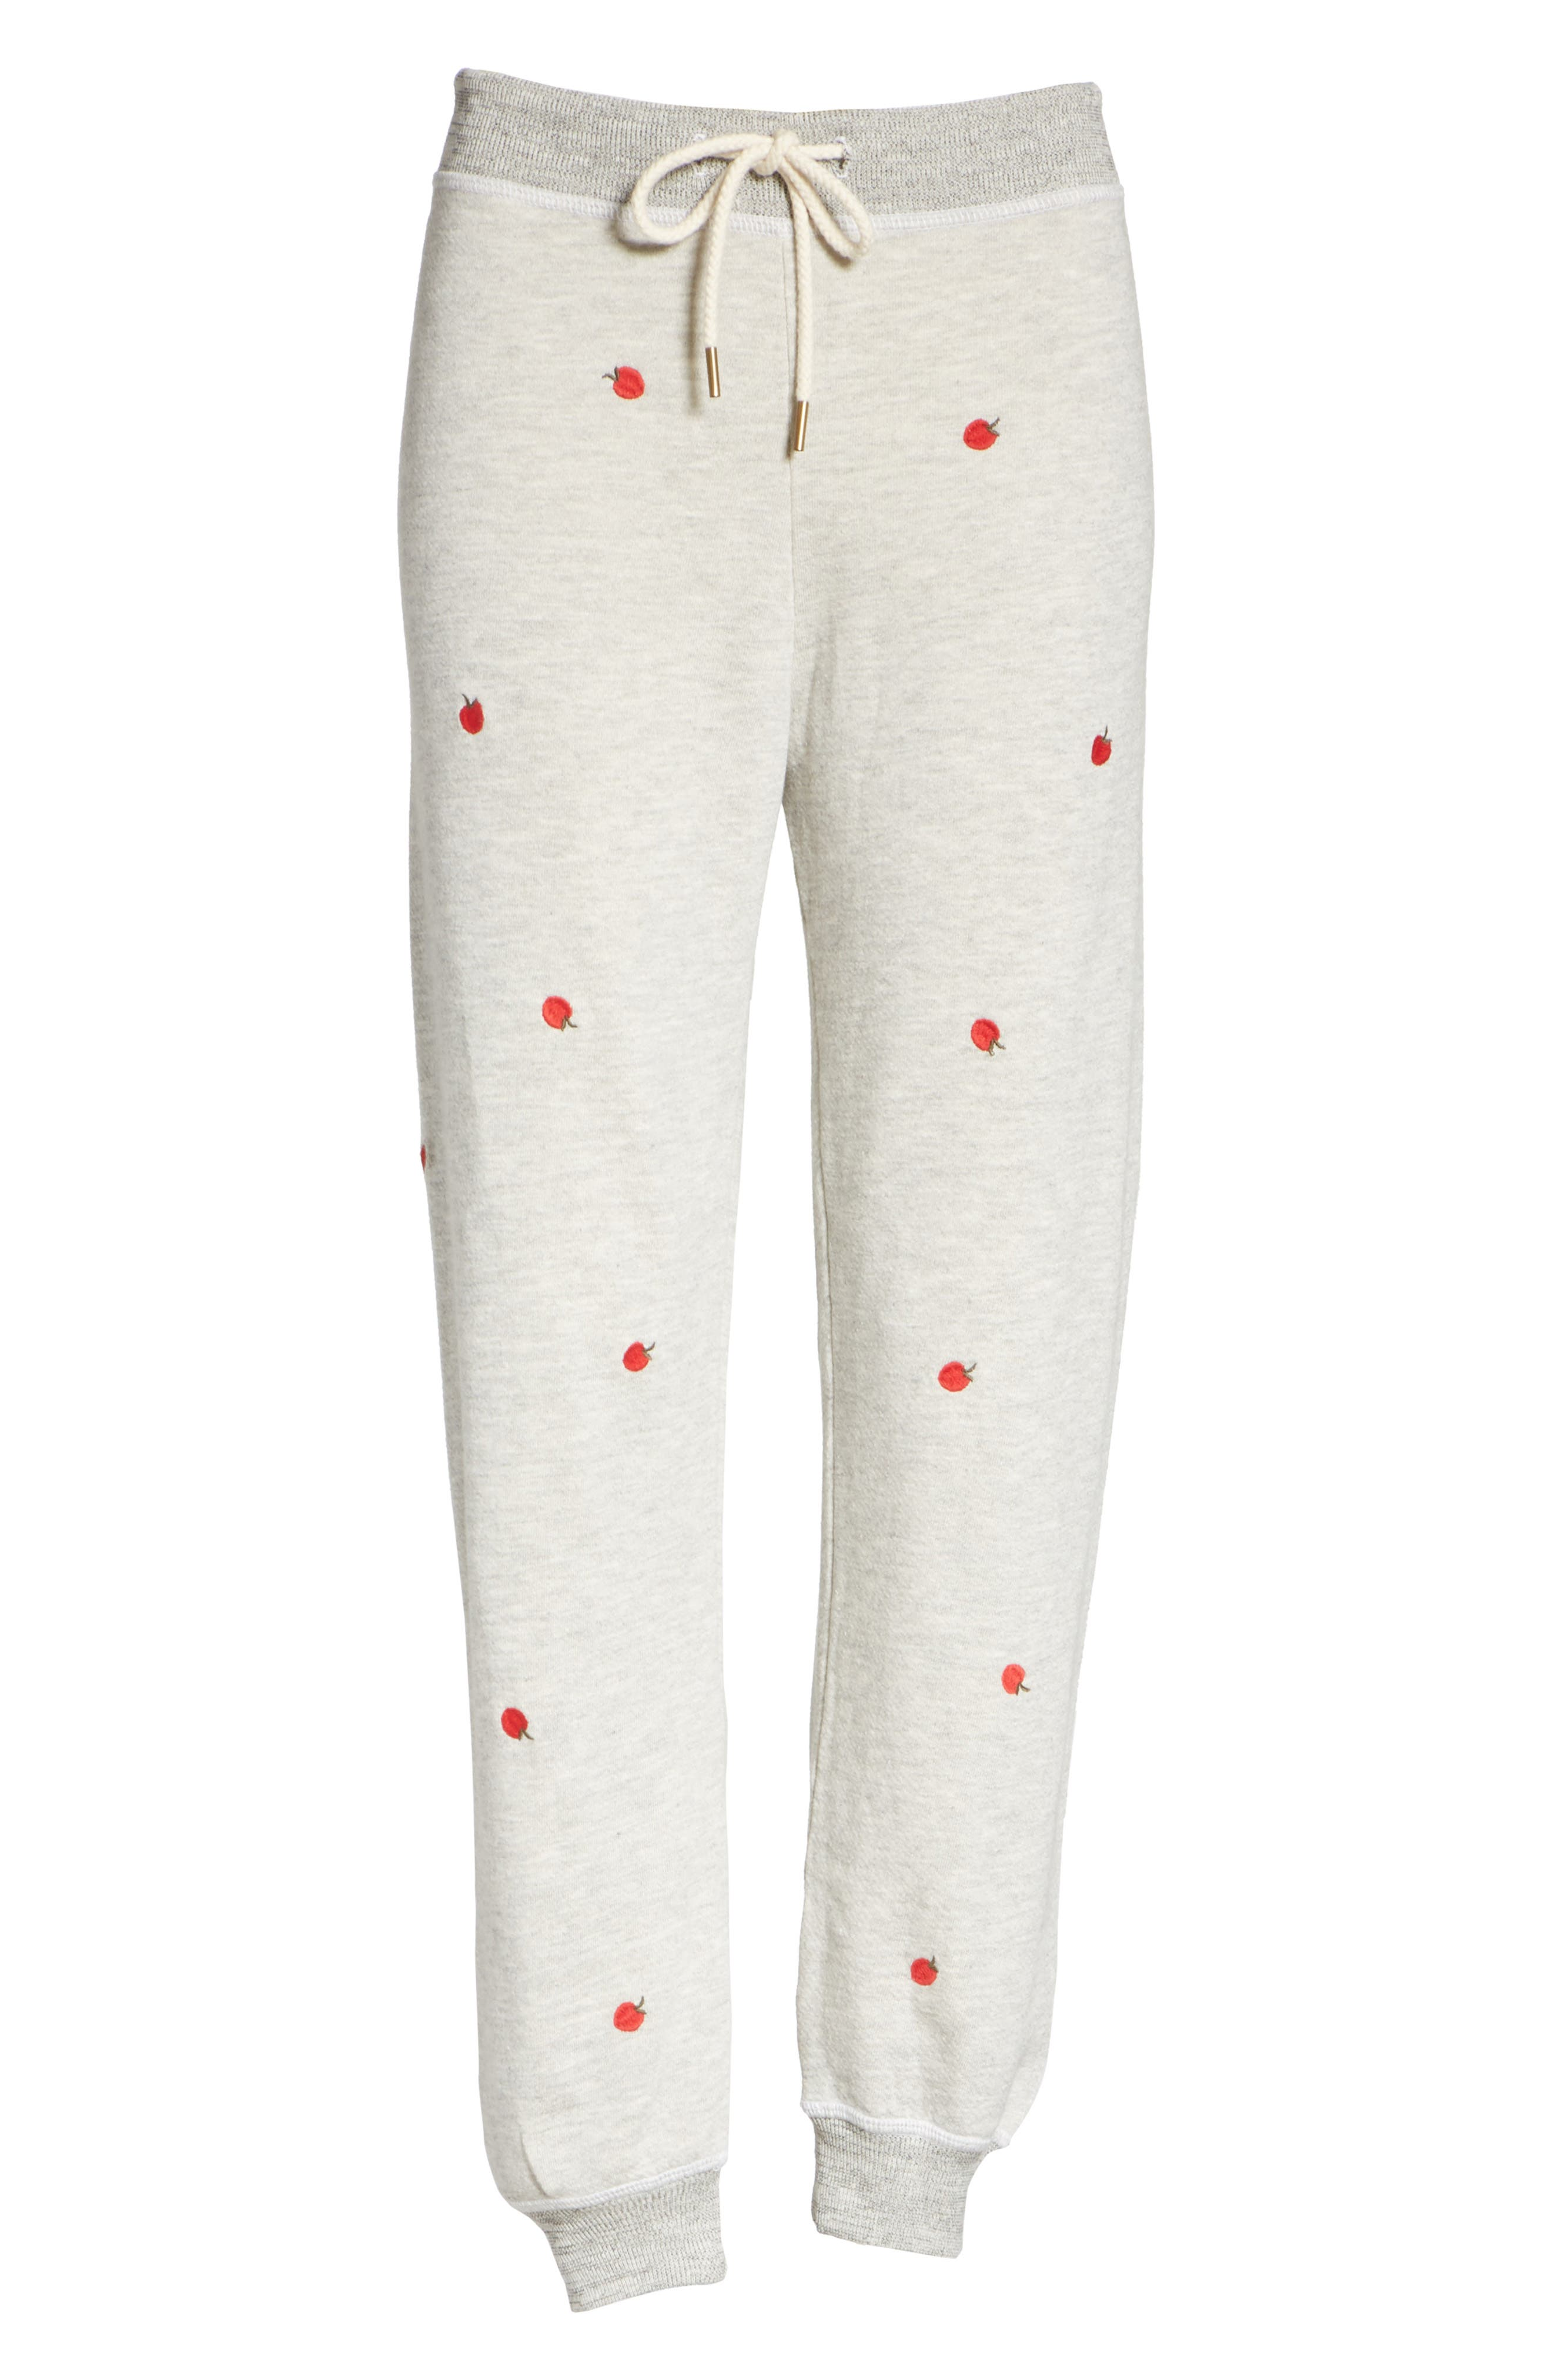 The Cropped Sweatpants,                             Alternate thumbnail 6, color,                             Light Heather Grey/ Red Apples